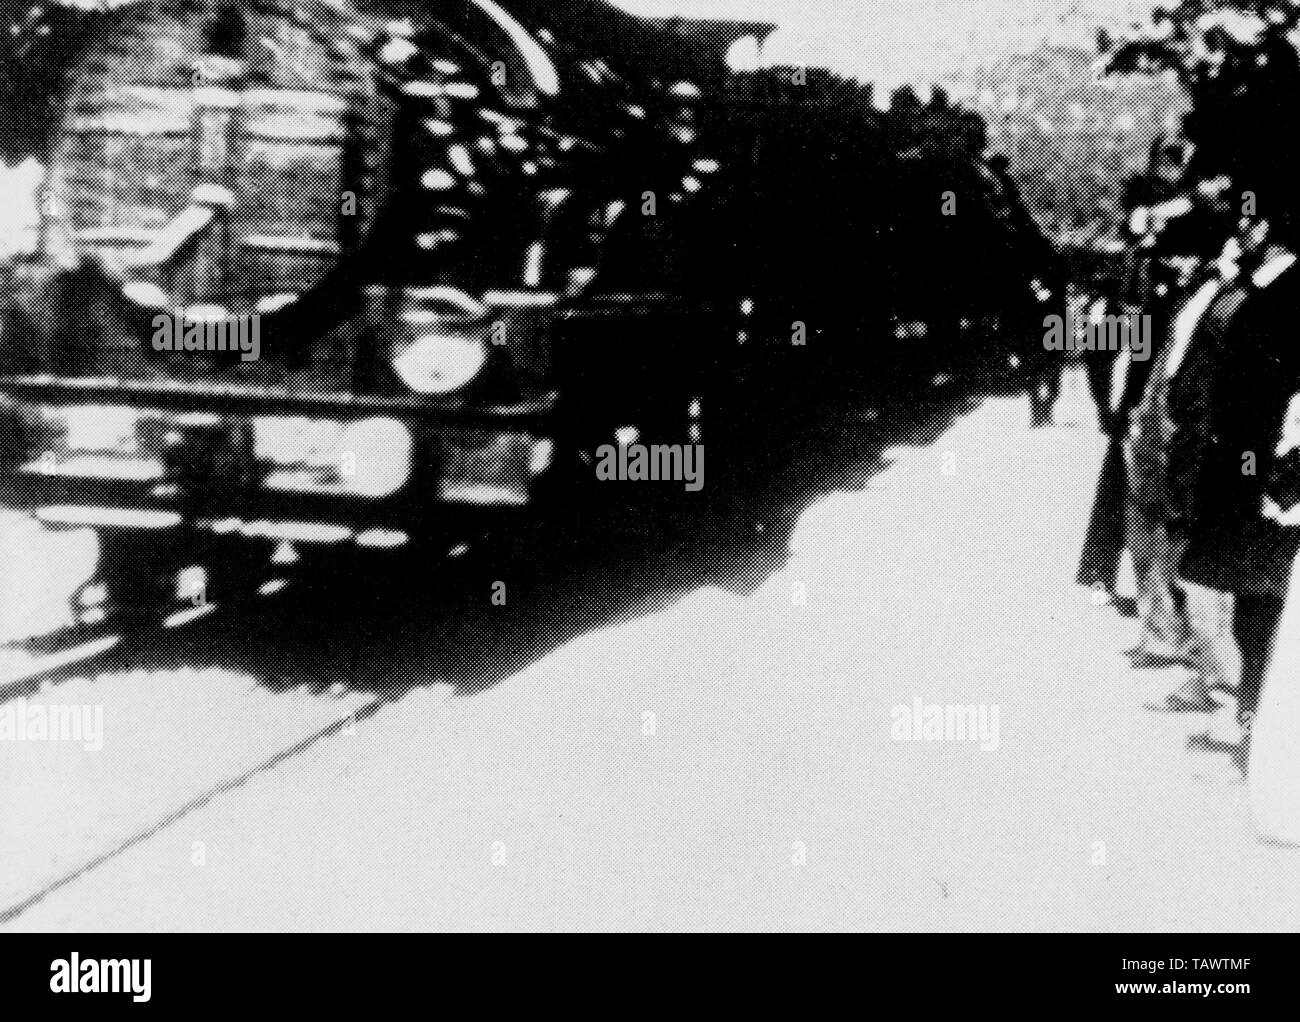 the Arrival of a Train at La Ciotat Station, Arrival of a Train at La Ciotat, The Arrival of the Mail Train, Train Pulling into a Station, 1895 French short black-and-white silent documentary film directed and produced by Auguste and Louis Lumiere - Stock Image